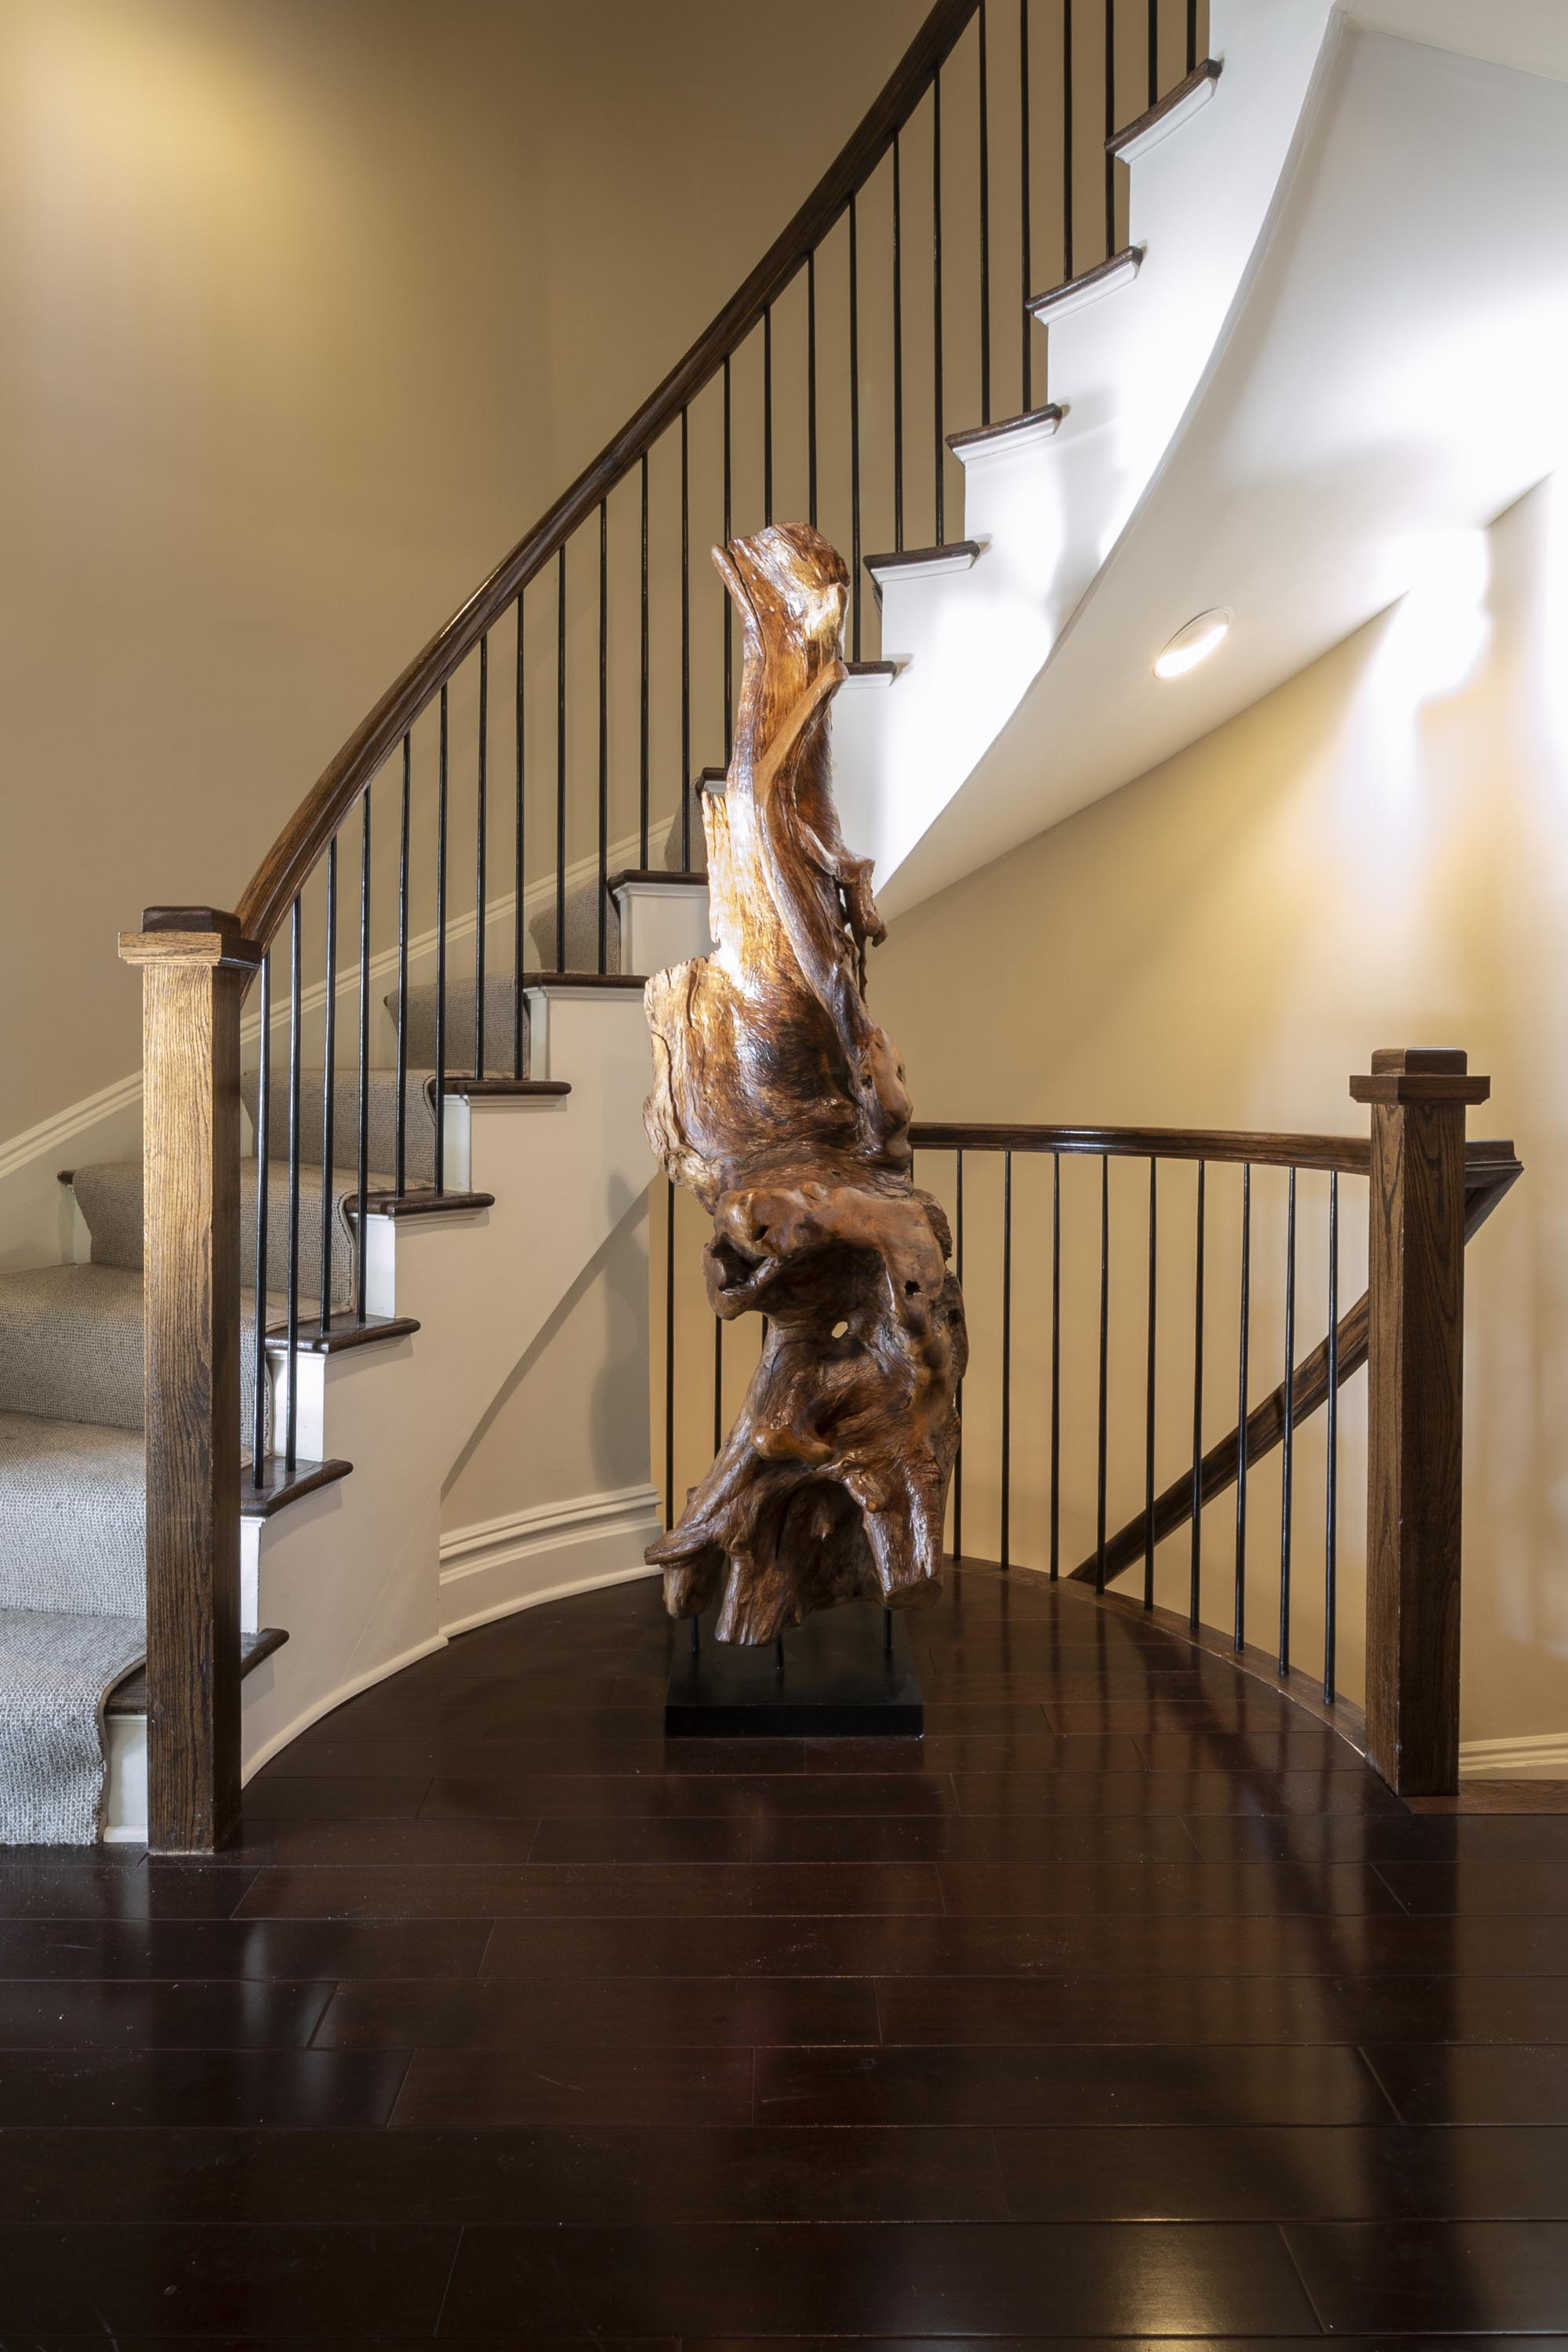 House interior with hardwood floor, staircase and a wooden sculpture